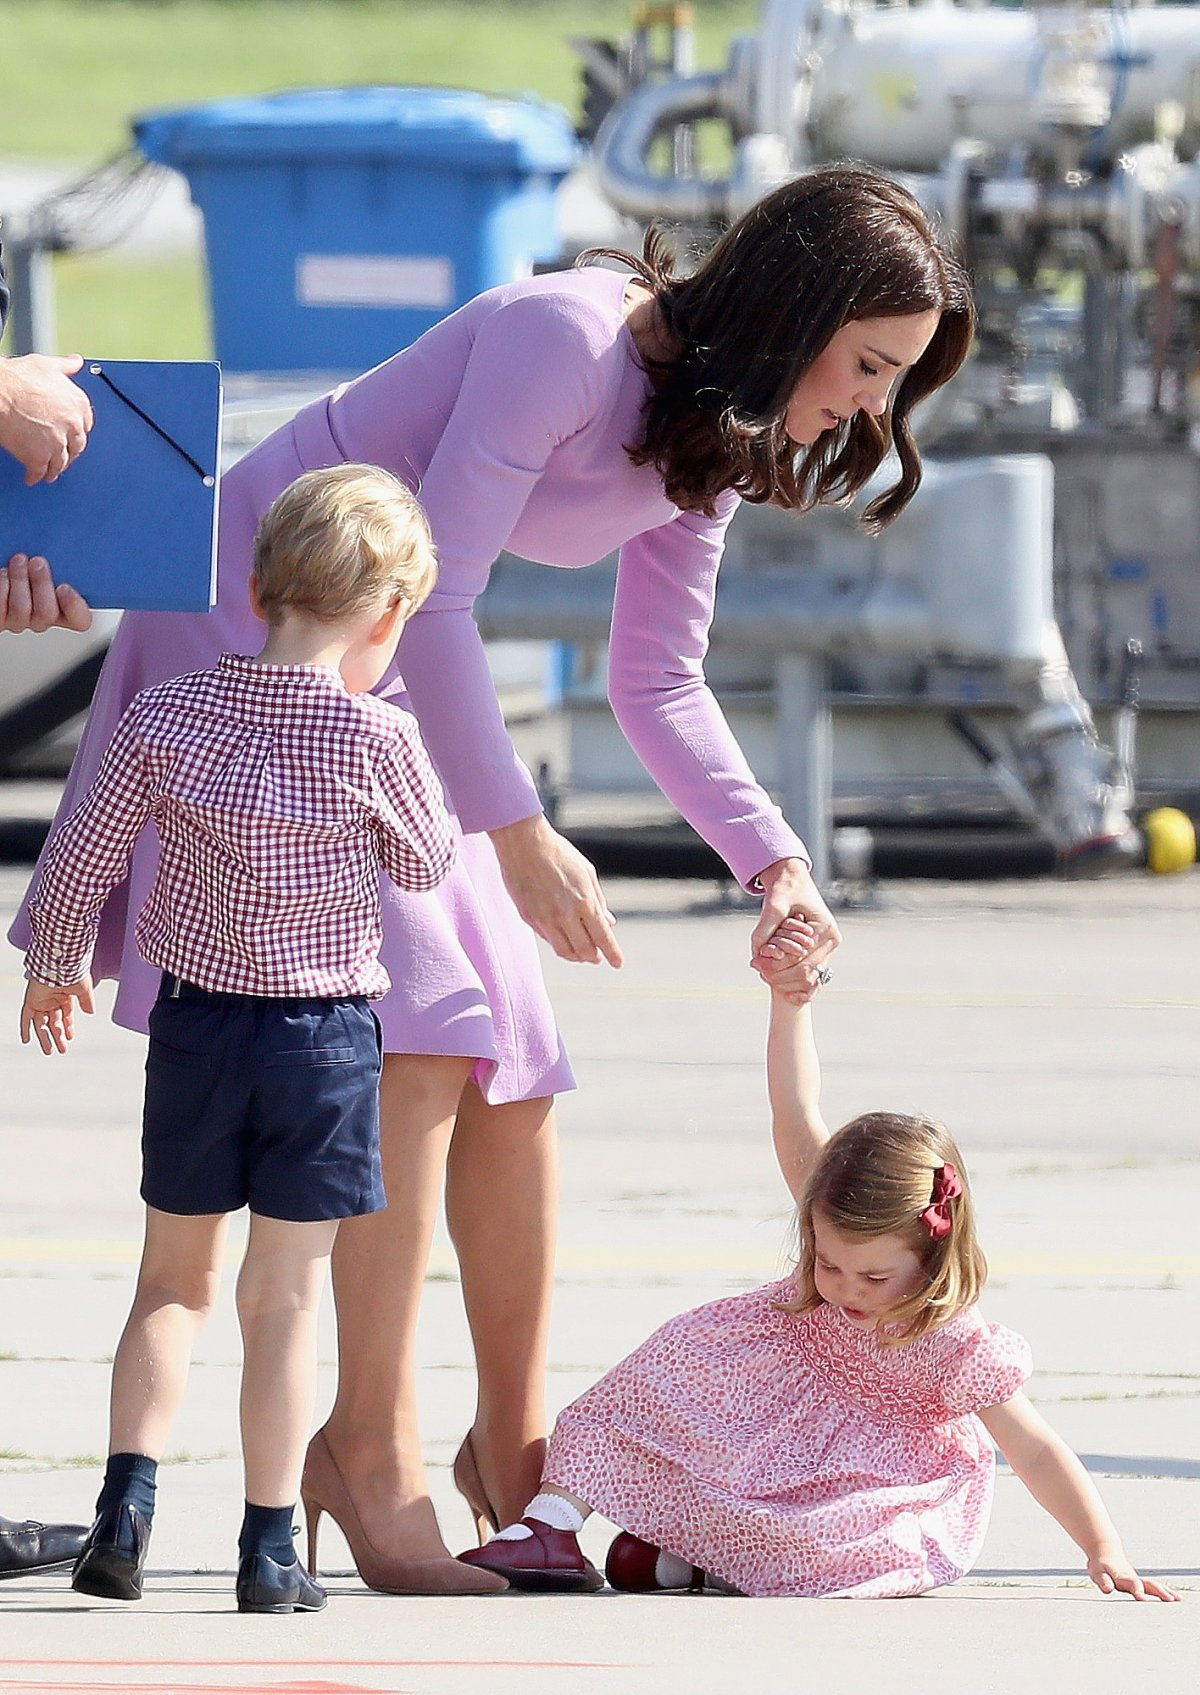 The trip was a bit too much for Princess Charlotte, who threw a minor tantrum on the runway before a helicopter ride.